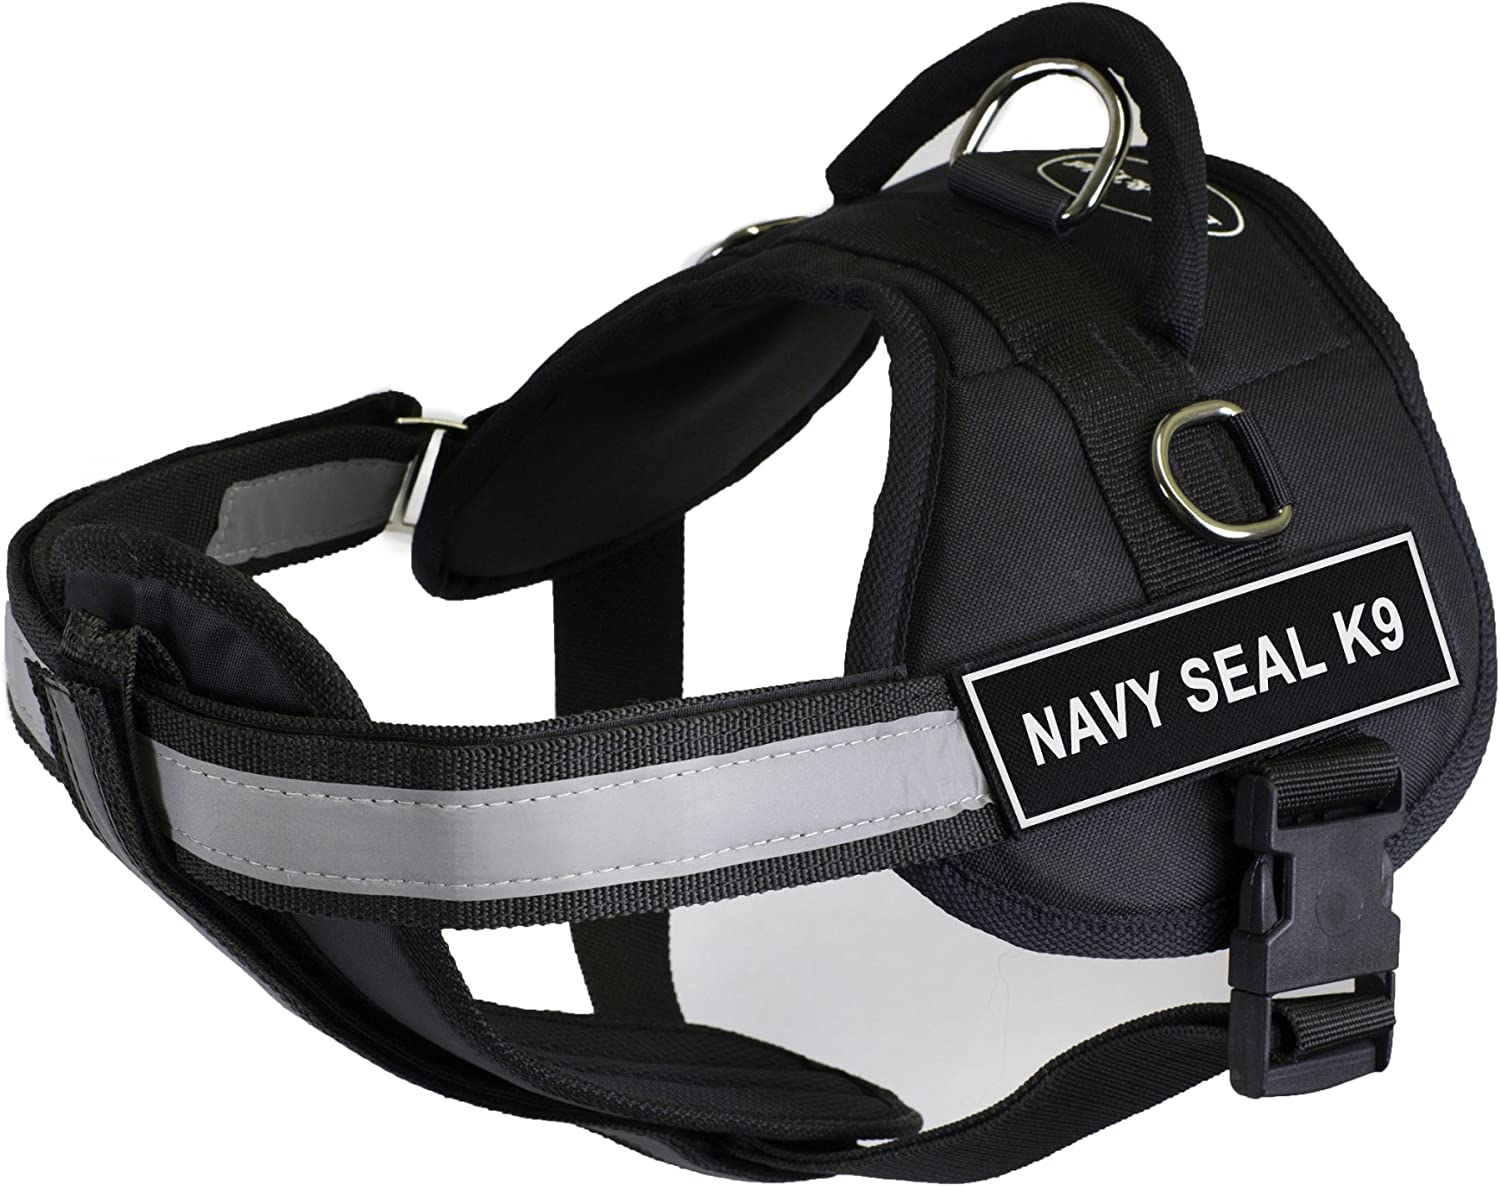 Dean & Tyler 25Inch to 34Inch Pet Harness with Padded Reflective Chest Straps, Small, Navy Seal K9, Black